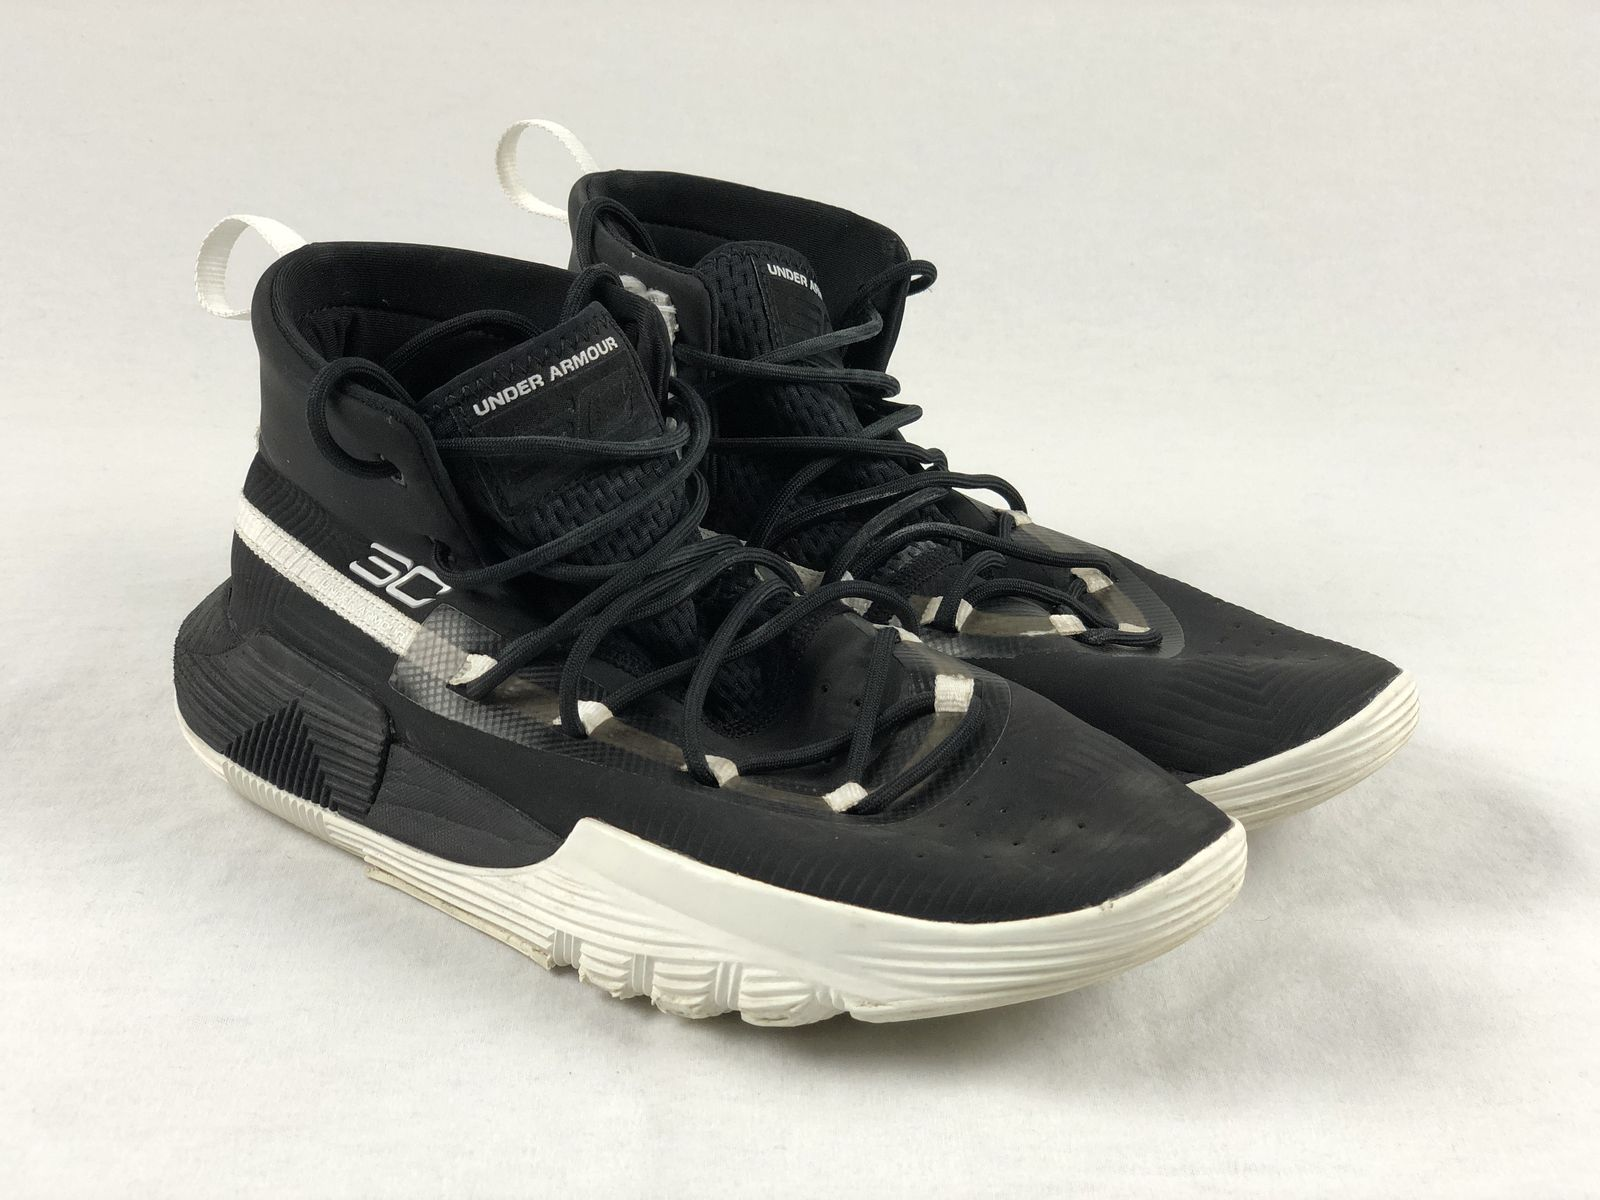 94559ec8fbad Details about Under Armour Curry 3 Zero - Black Basketball Shoes (Men s 8)  - Used